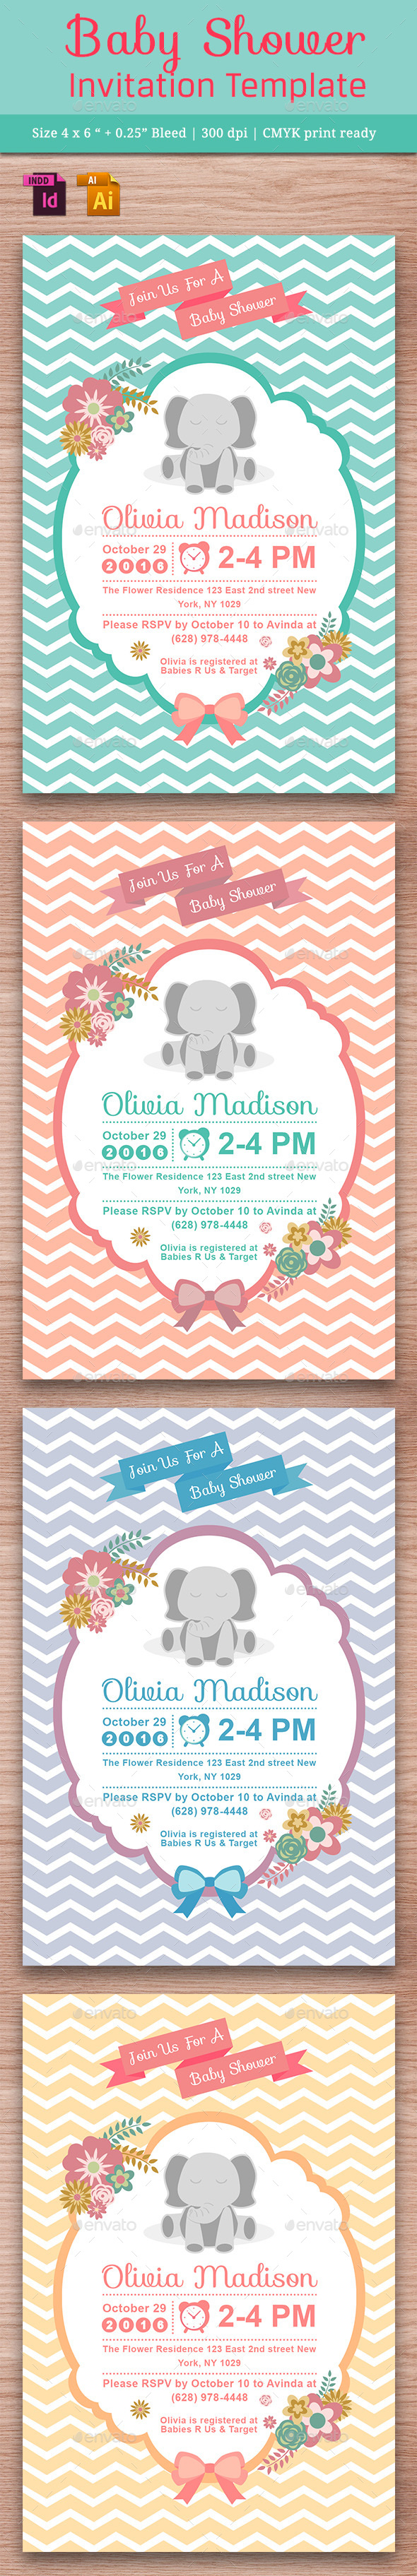 Baby Shower Template - Vol. 12 - Cards & Invites Print Templates